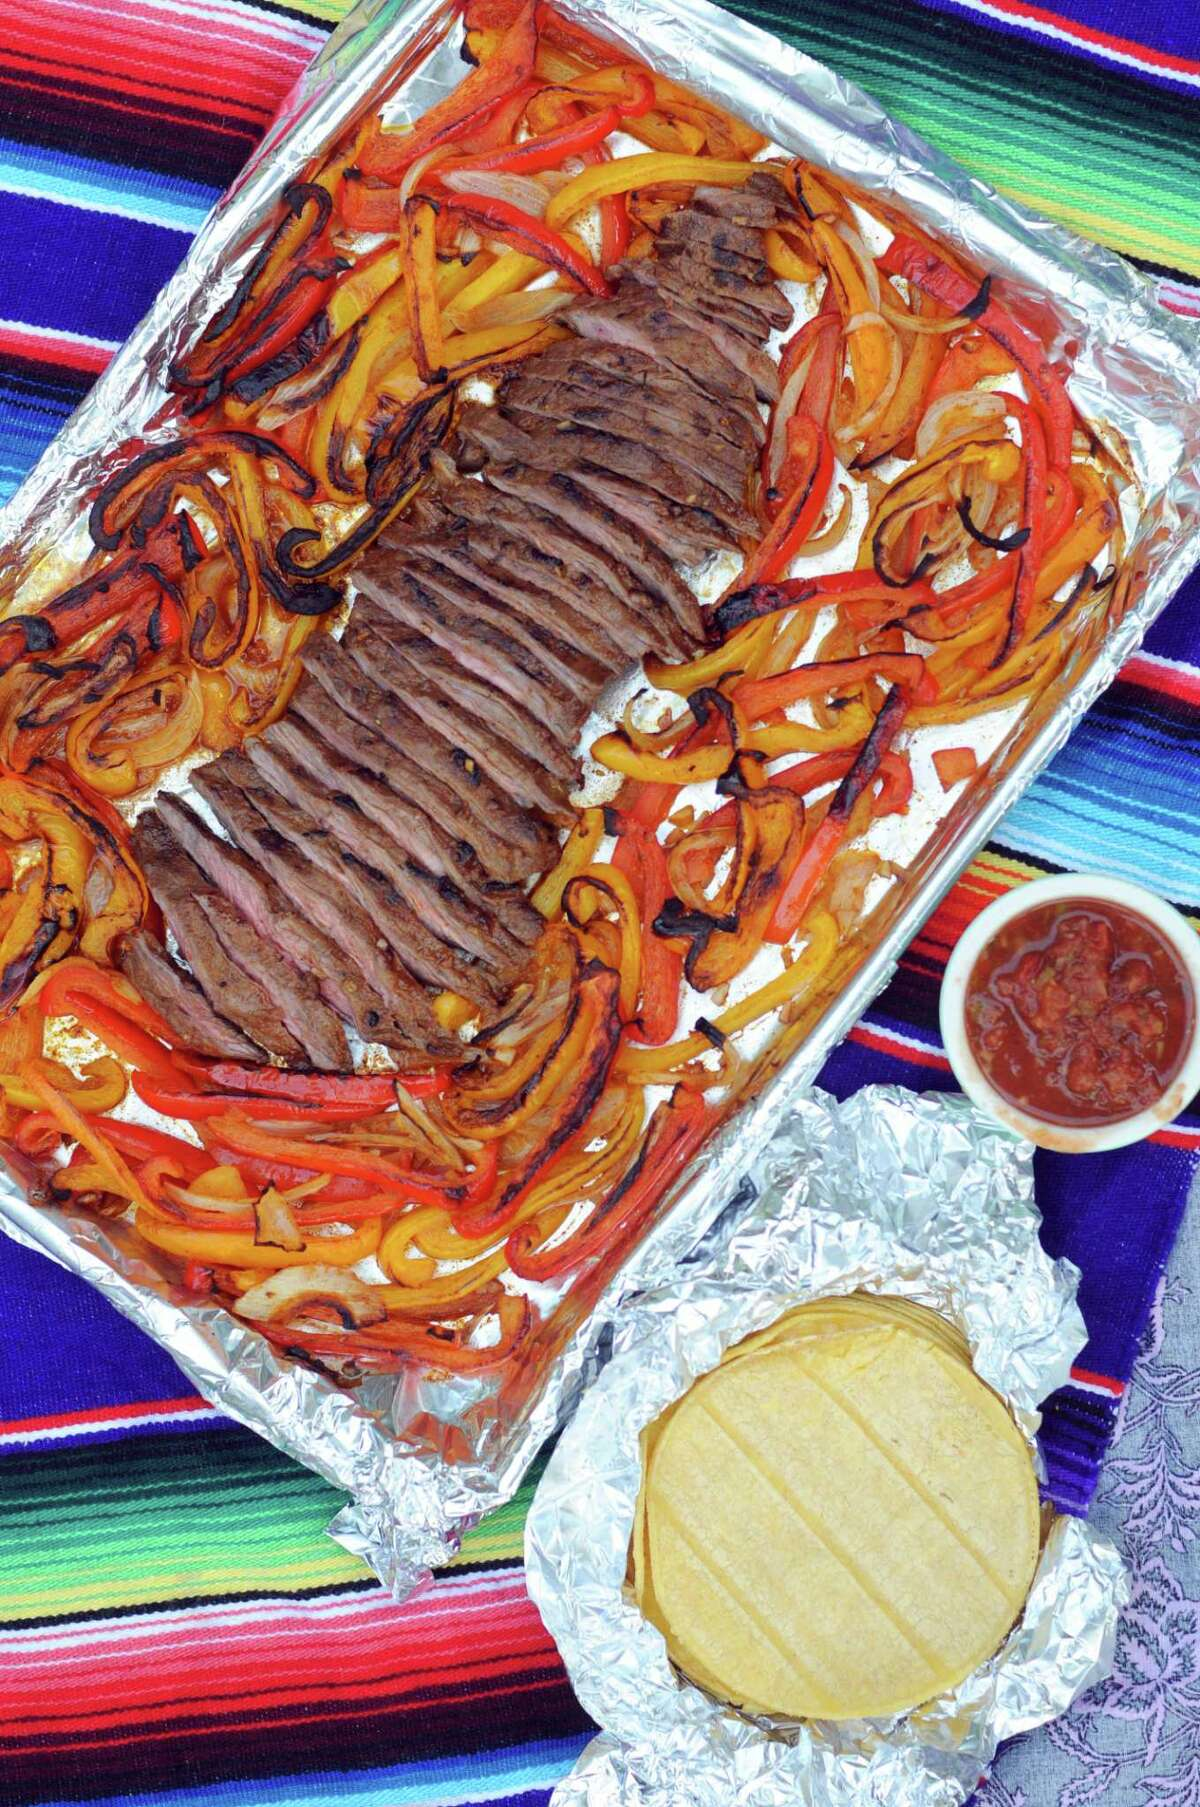 Dinners such as Sheet Pan Fajita Flank Steak with Peppers and Onions are easy to make and deliver bold flavors. Recipe, Page E8.